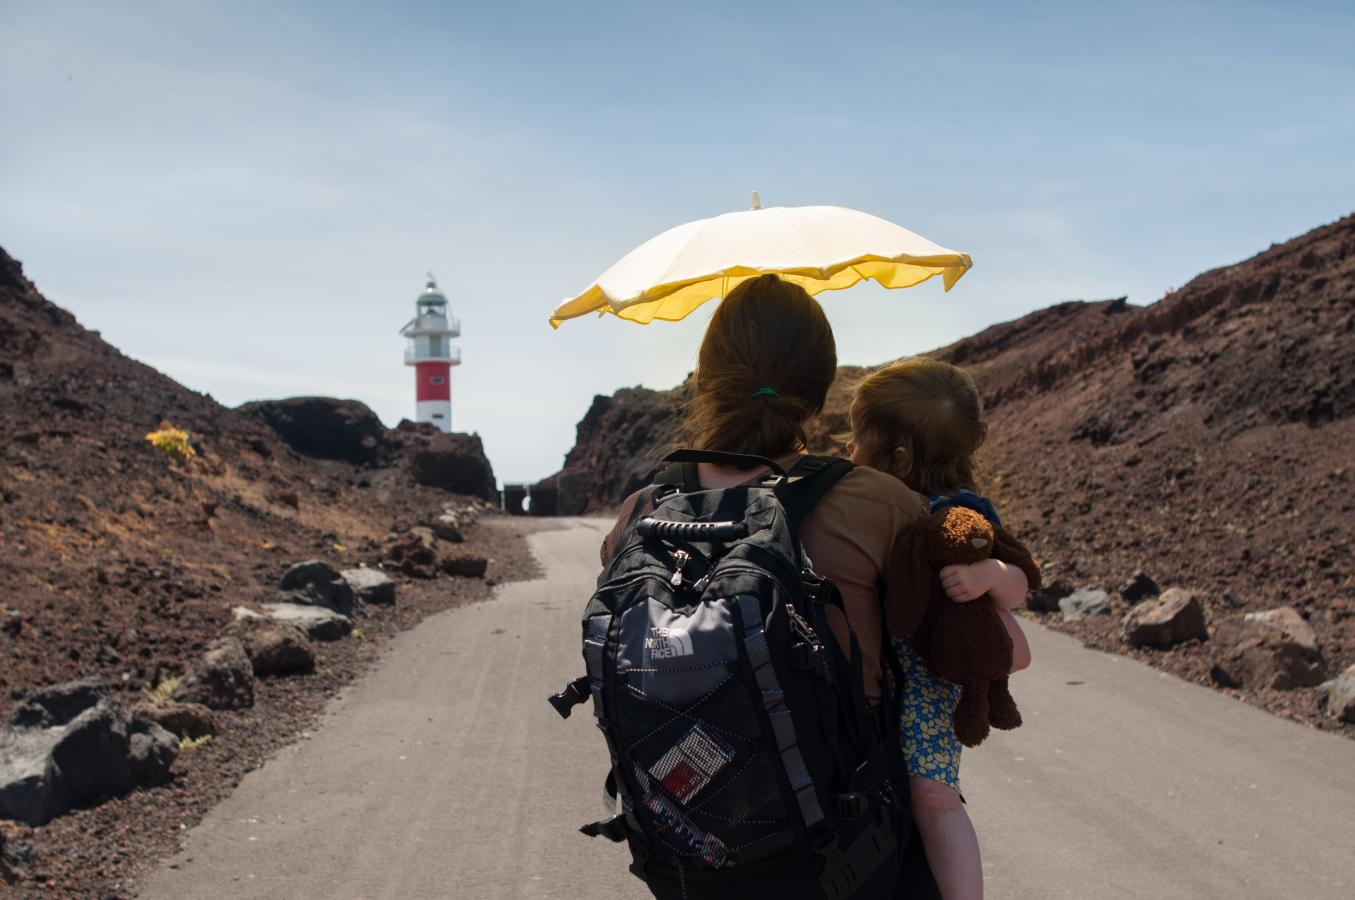 on-the-way-to-the-lighthouse-tenerife-2013